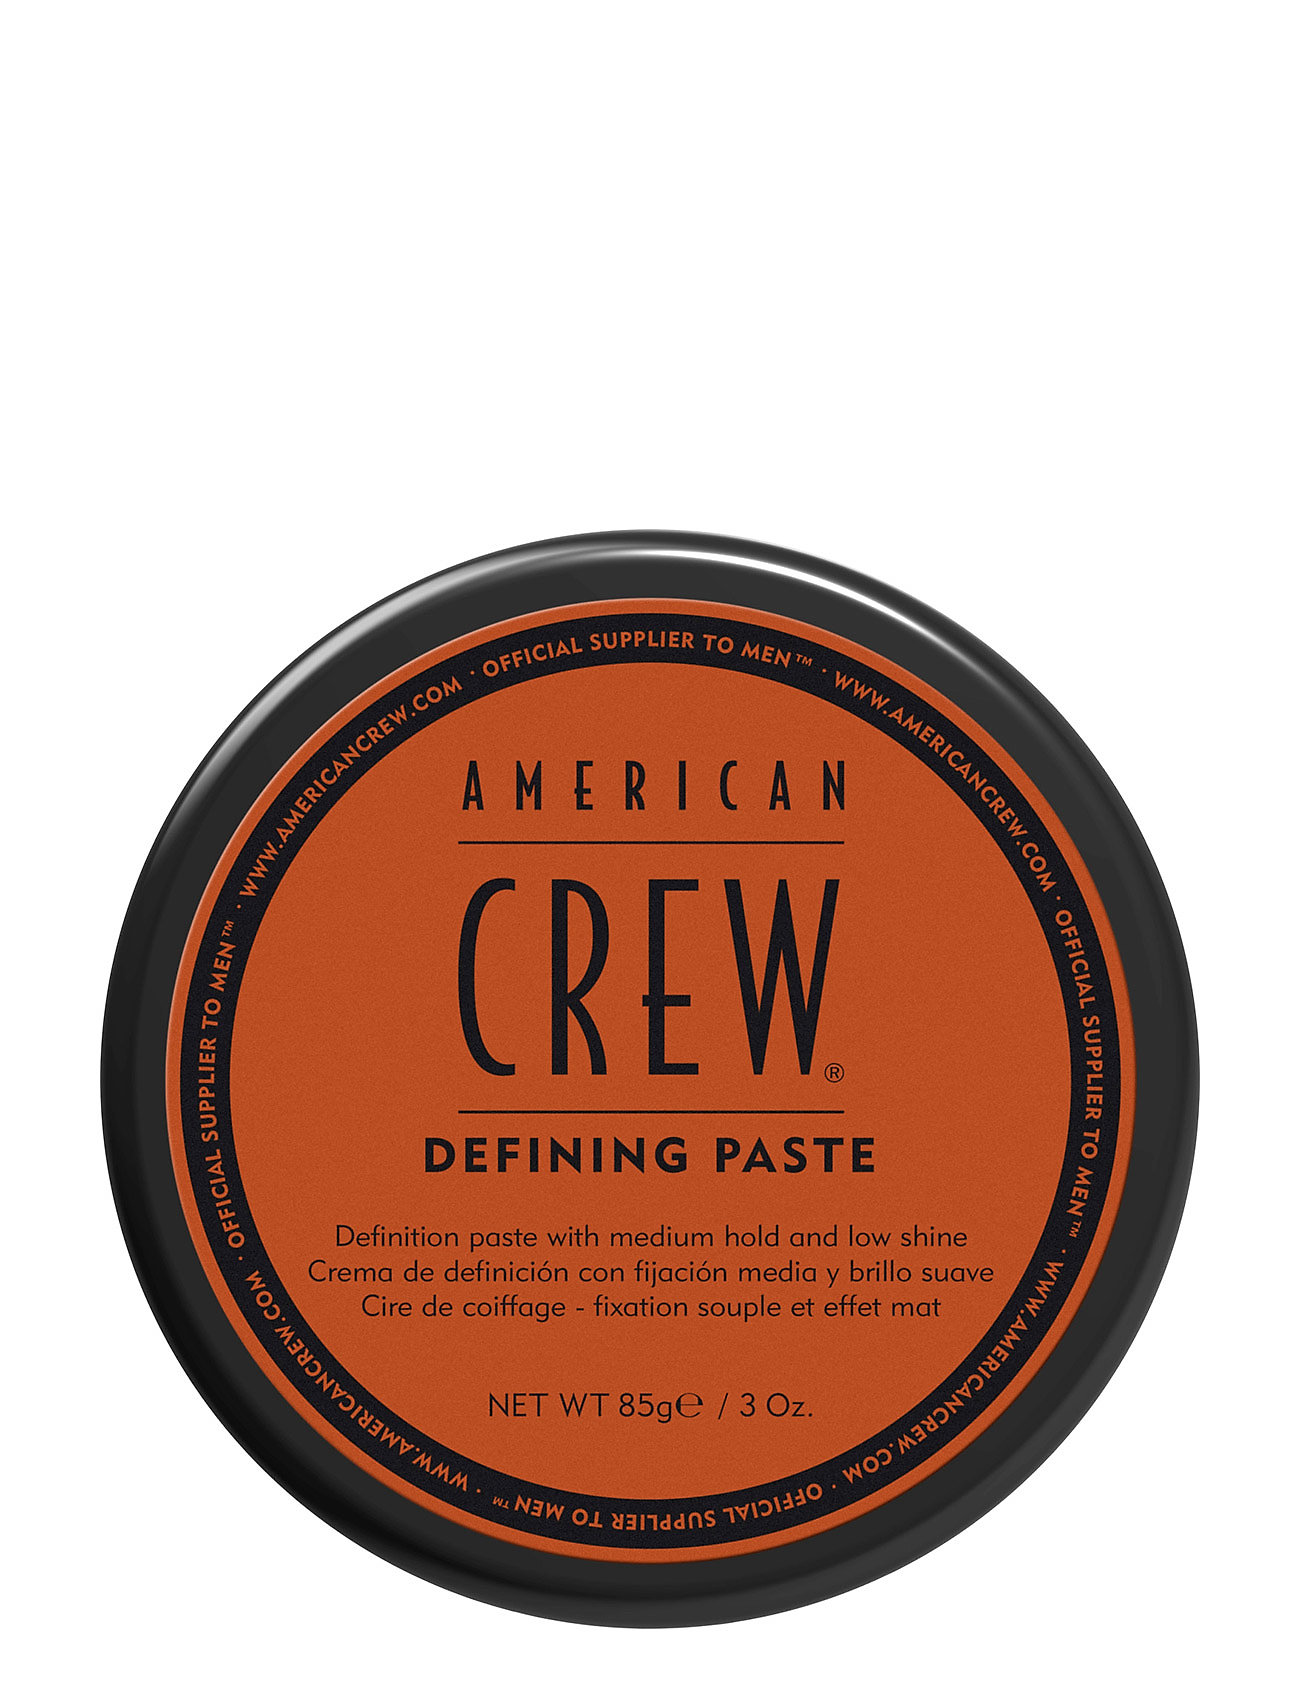 Image of Classic Styling Classic Defining Paste Styling Gel Nude American Crew (3333557835)